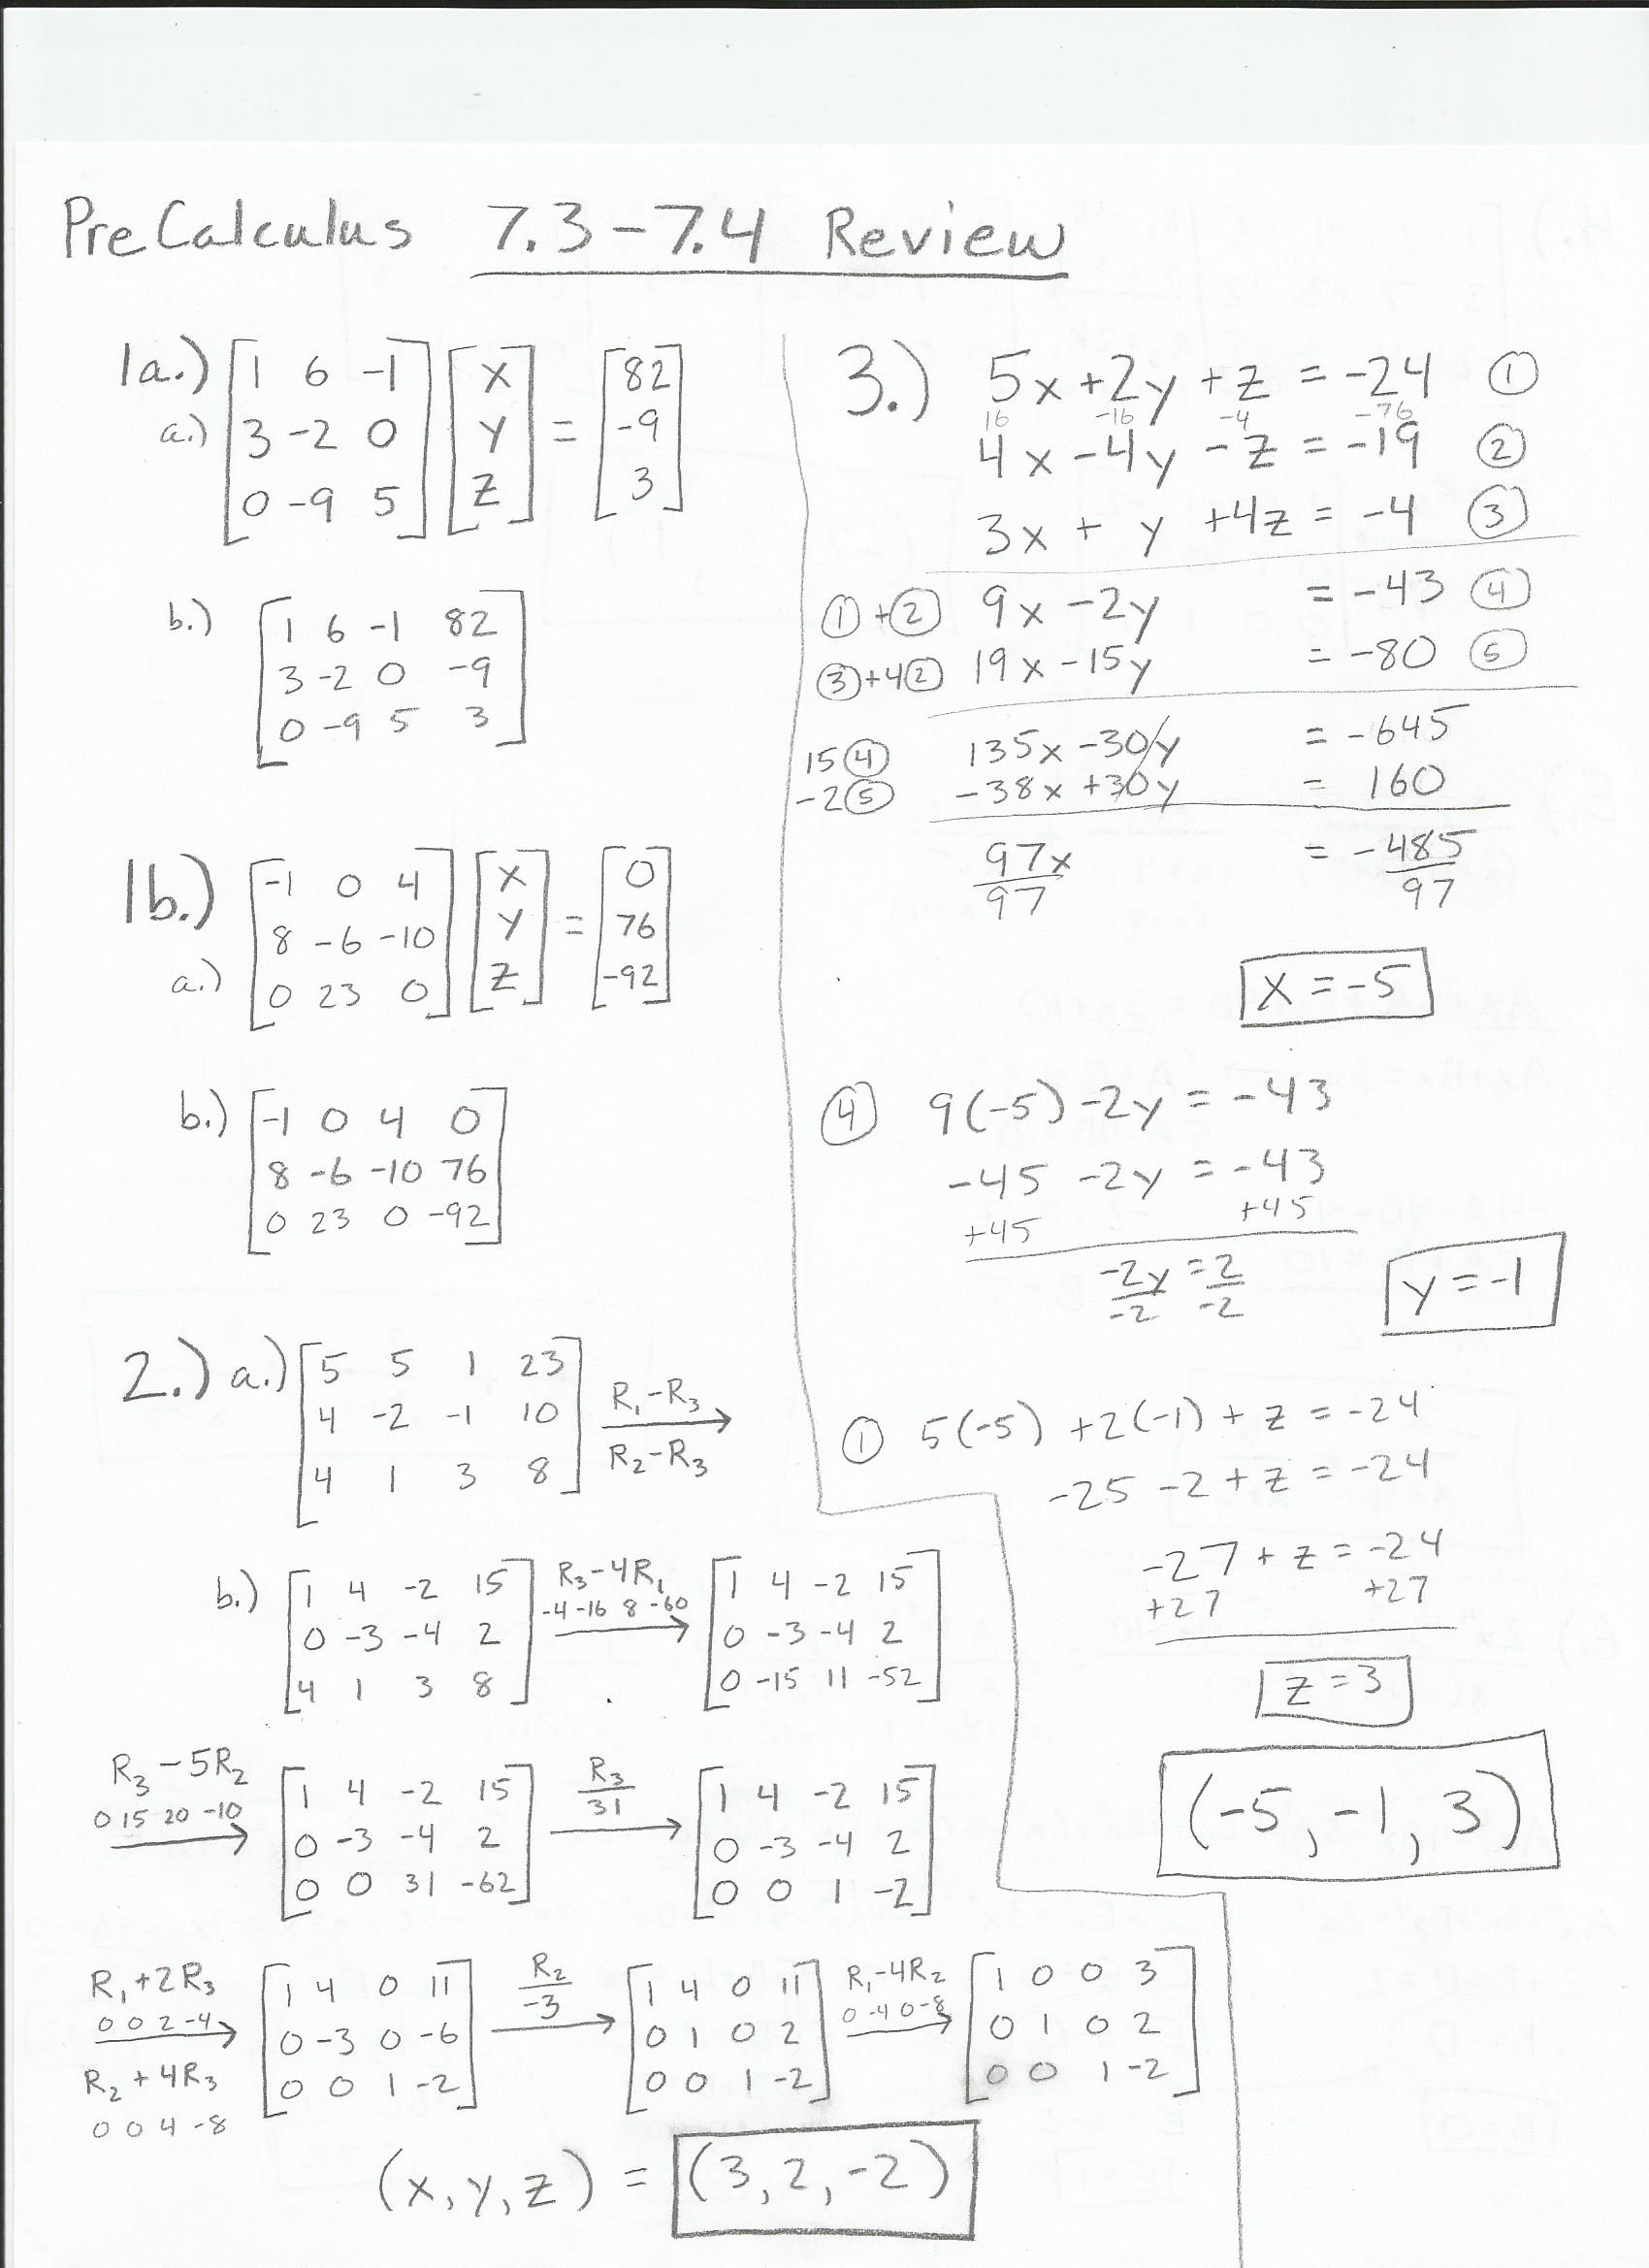 Precalculus Worksheets With Answers Image collections